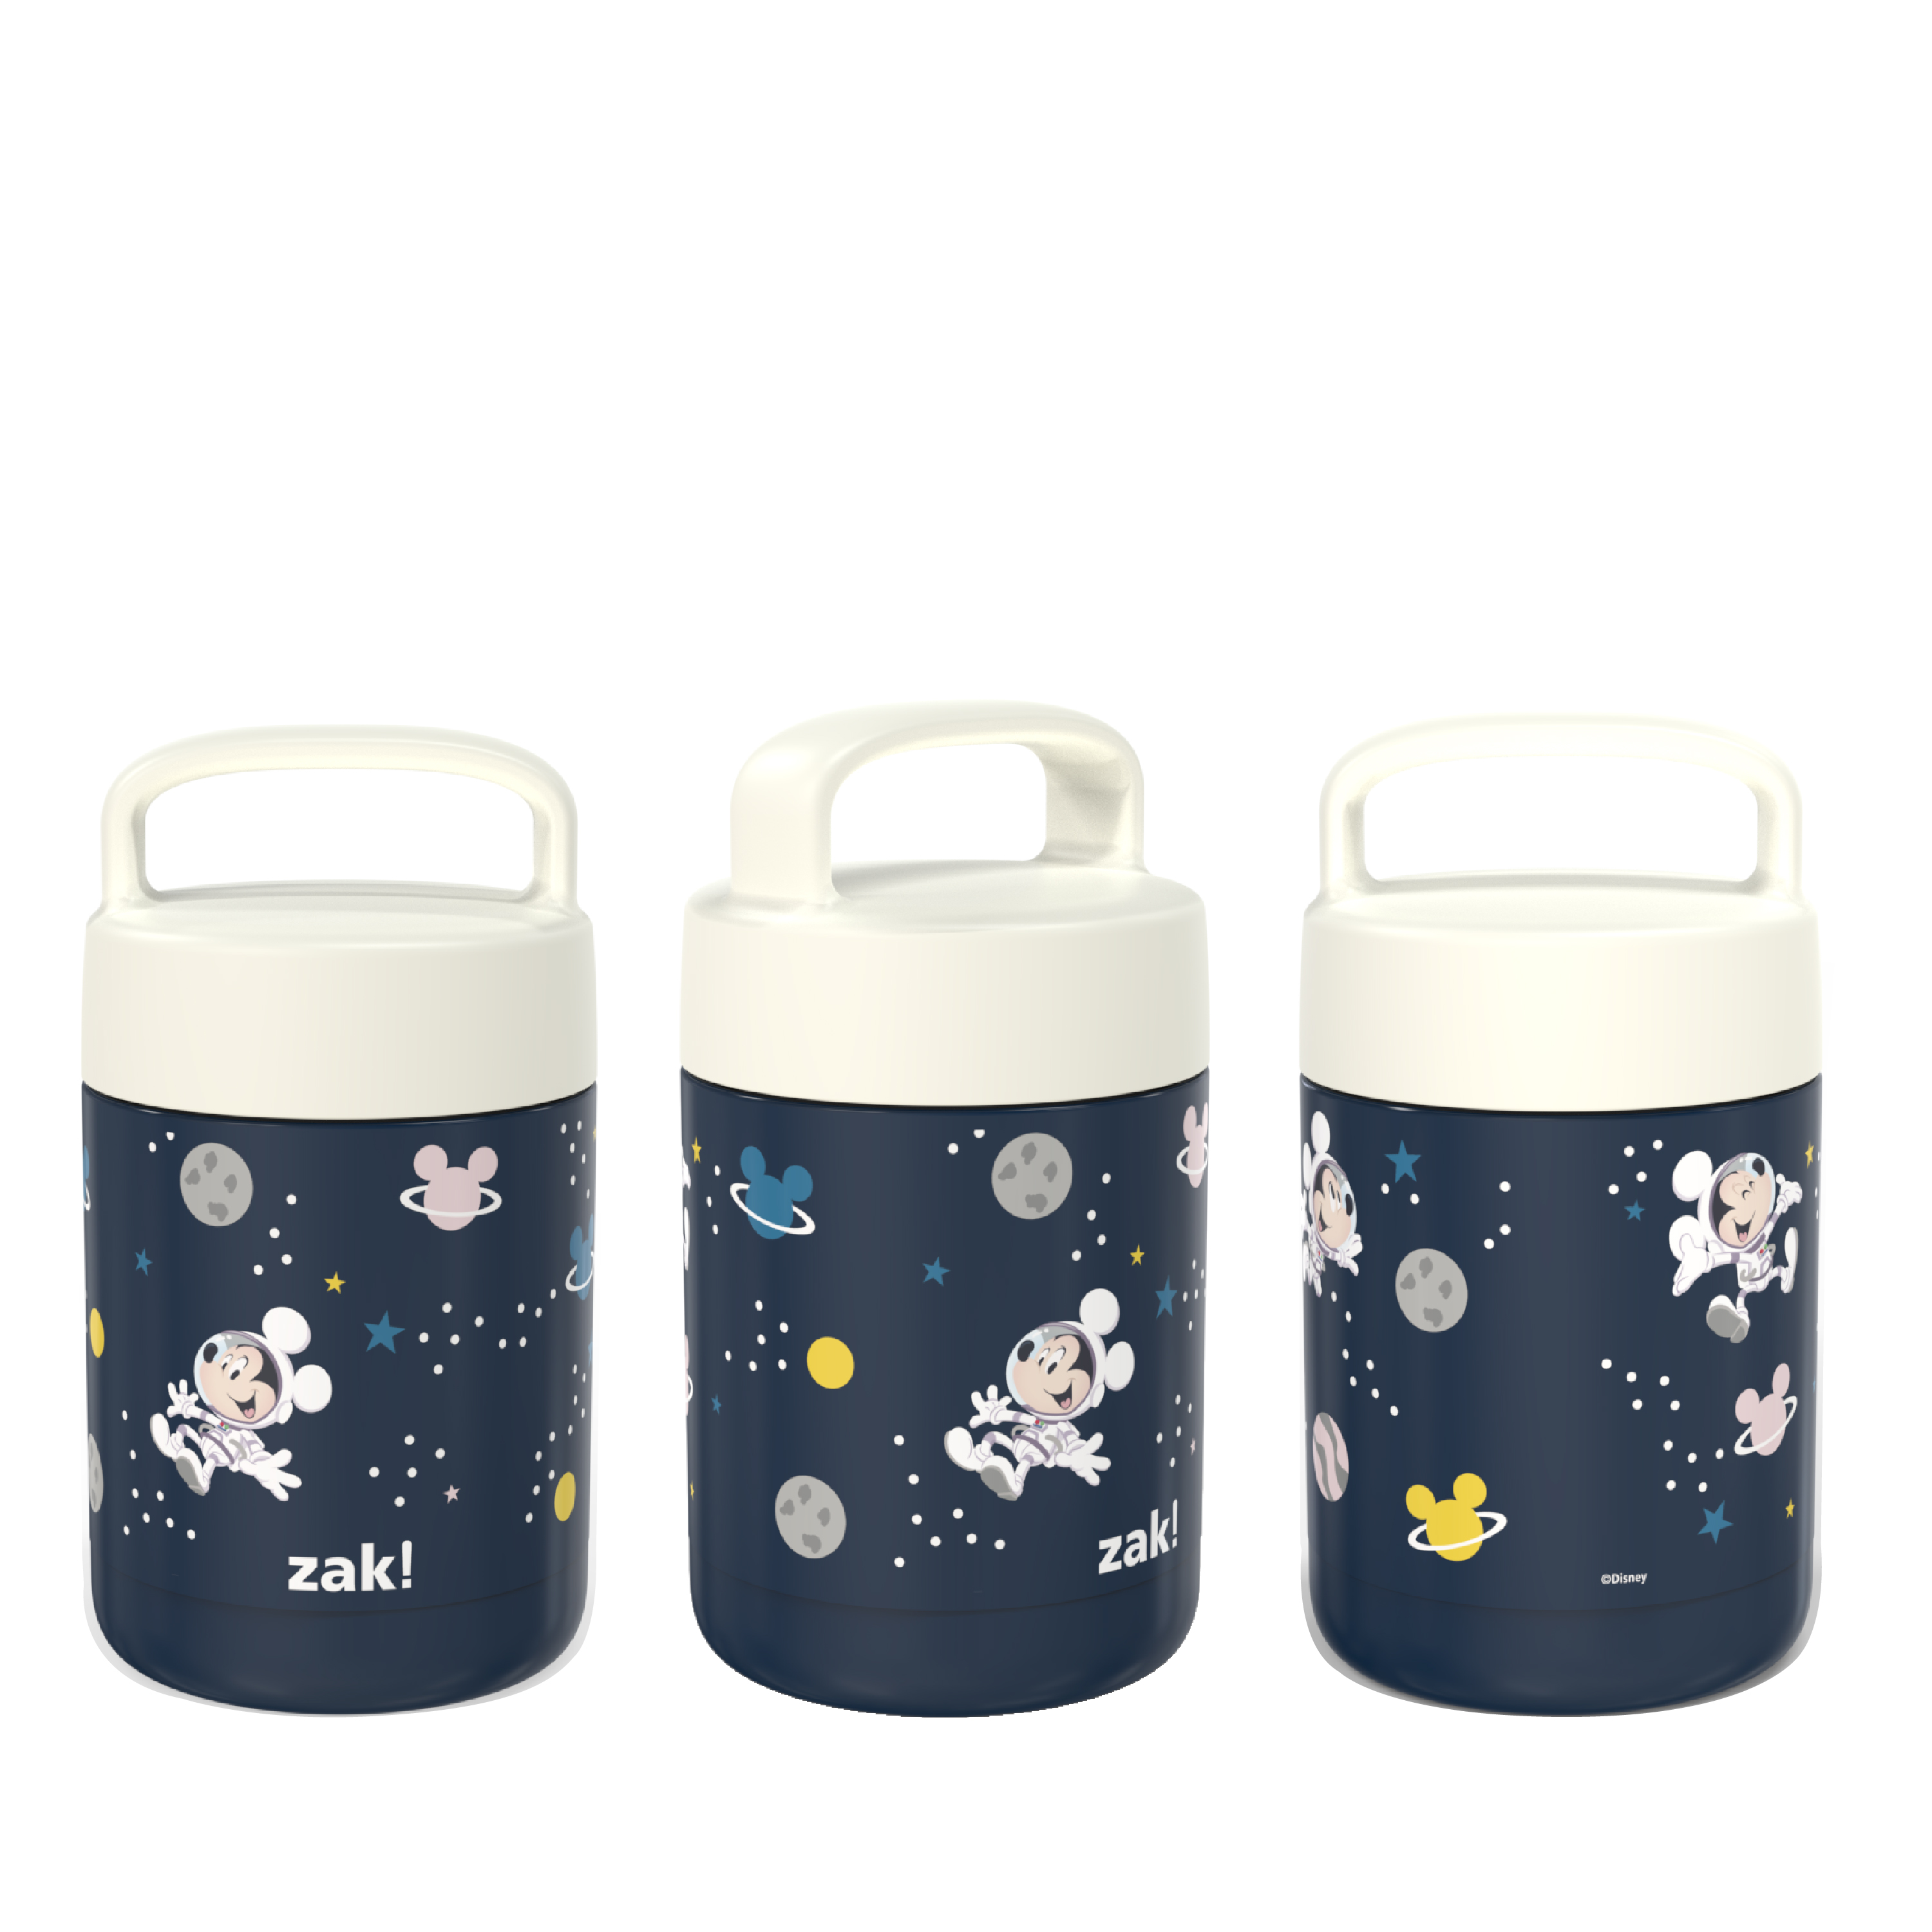 Disney Reusable Vacuum Insulated Stainless Steel Food Container, Mickey Mouse slideshow image 2